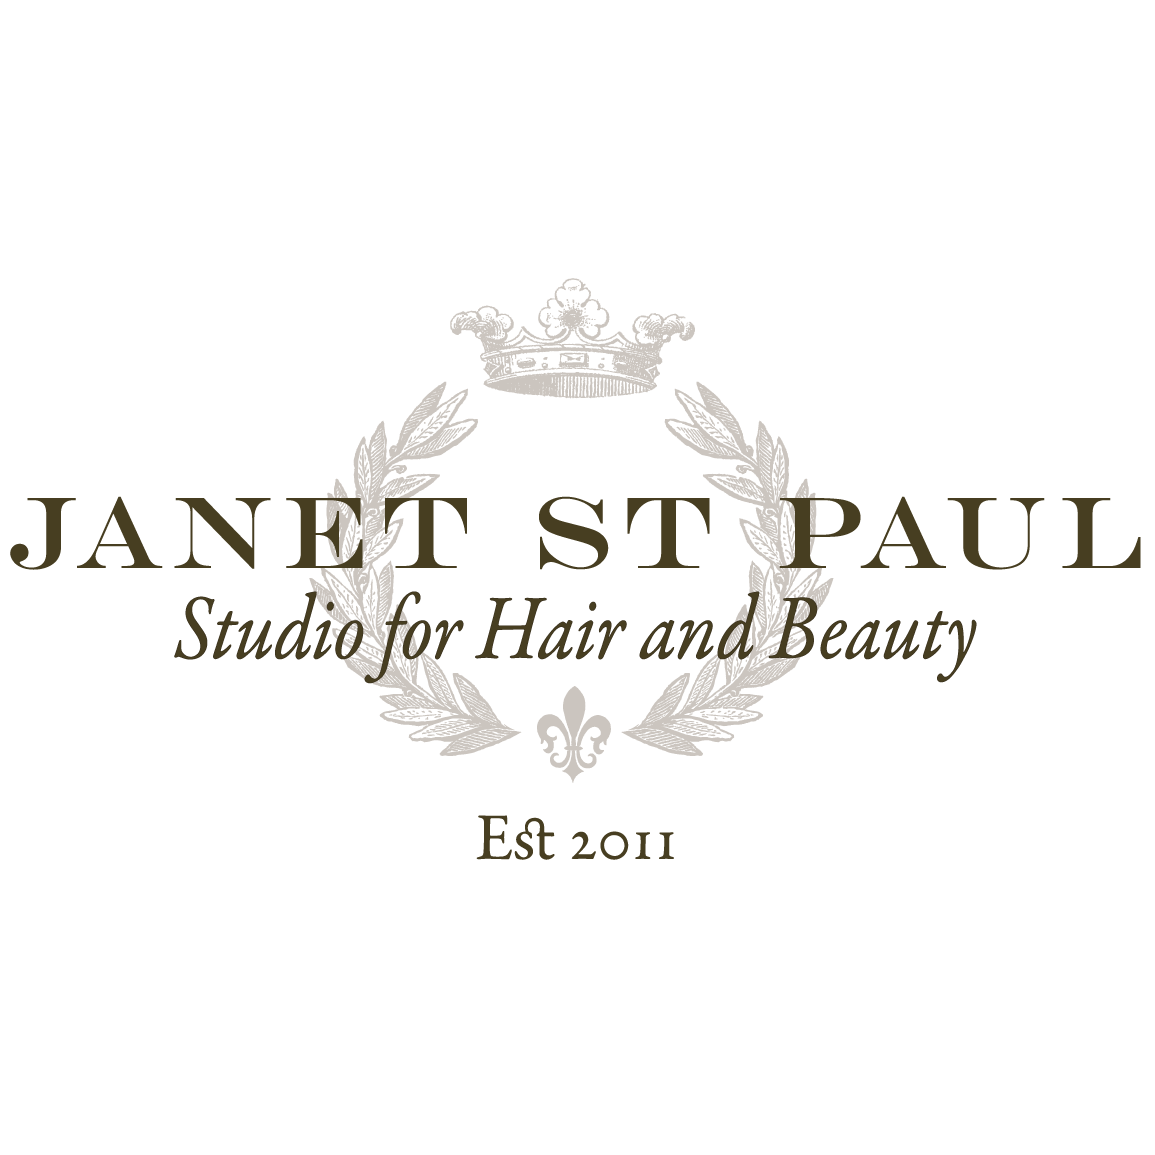 Janet St. Paul Studio for Hair and Beauty